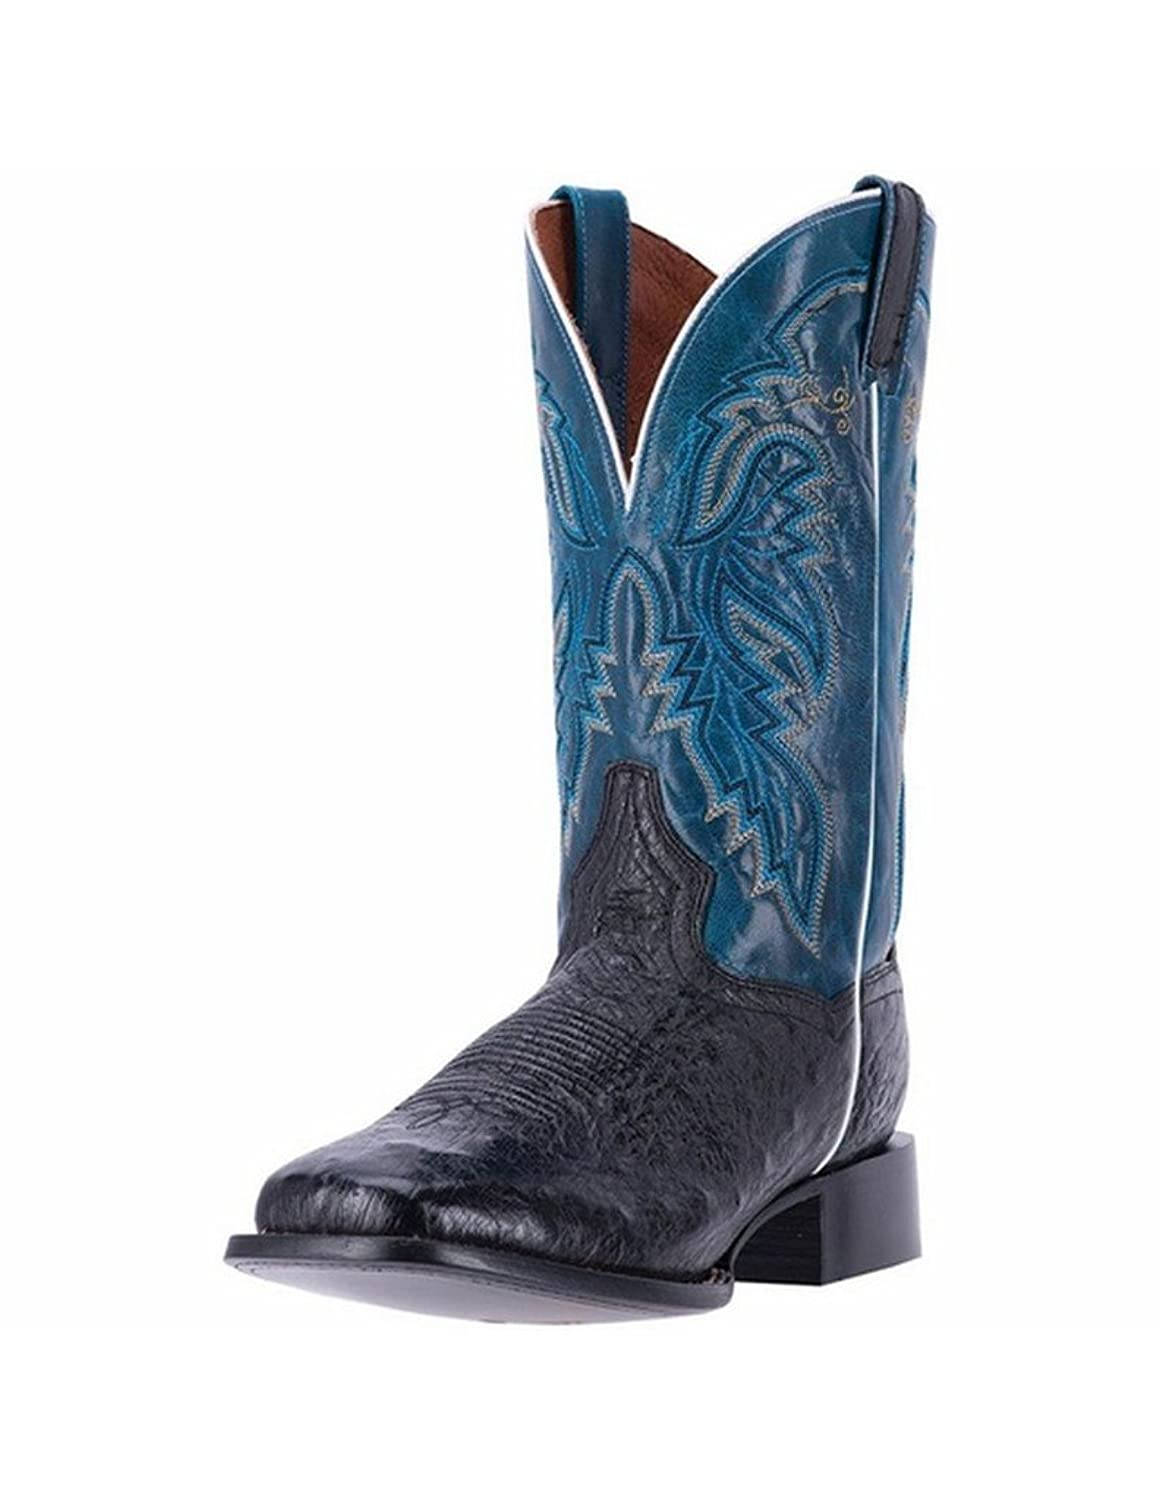 Dan Post Men's 12'' Callahan Ostrich Western Leather Fashion Boots